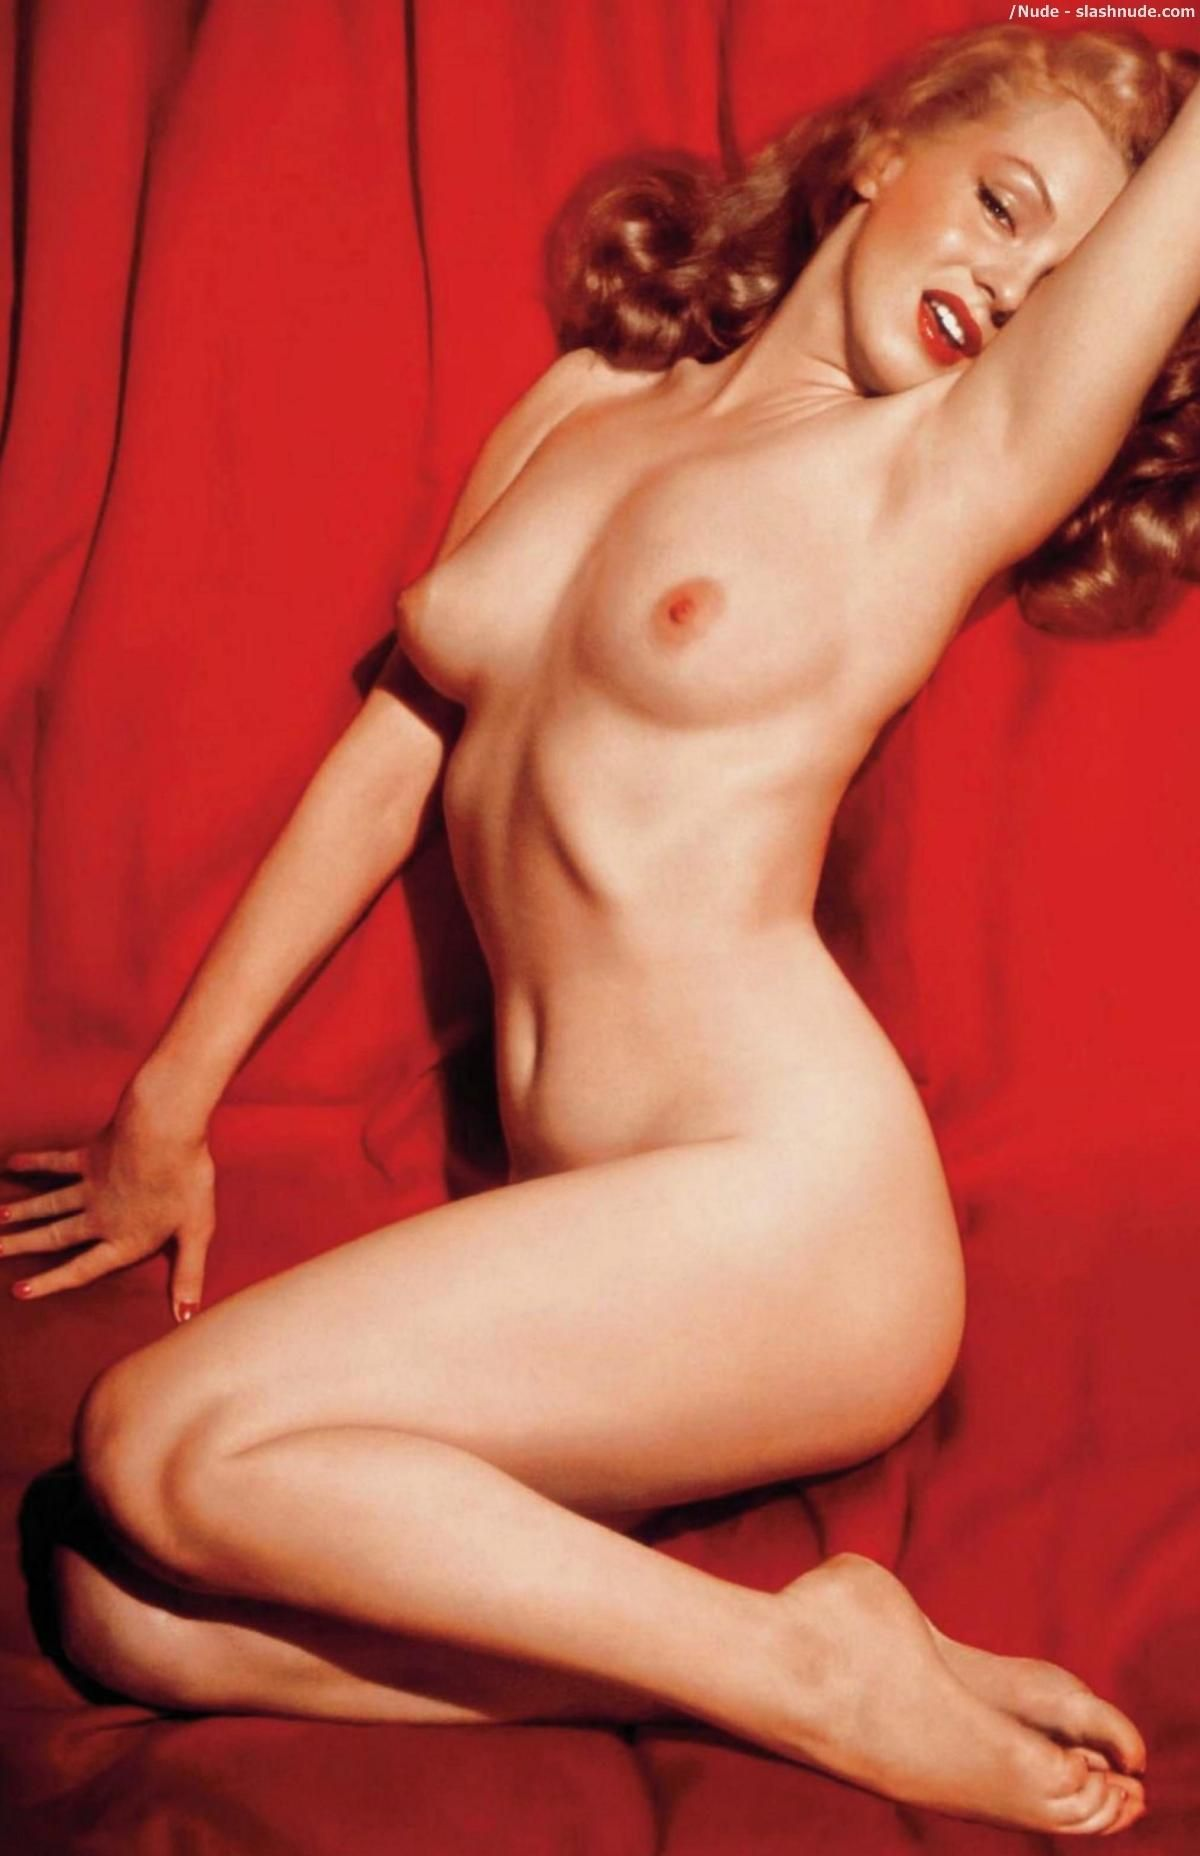 from Josue nude images of marilyn monroe